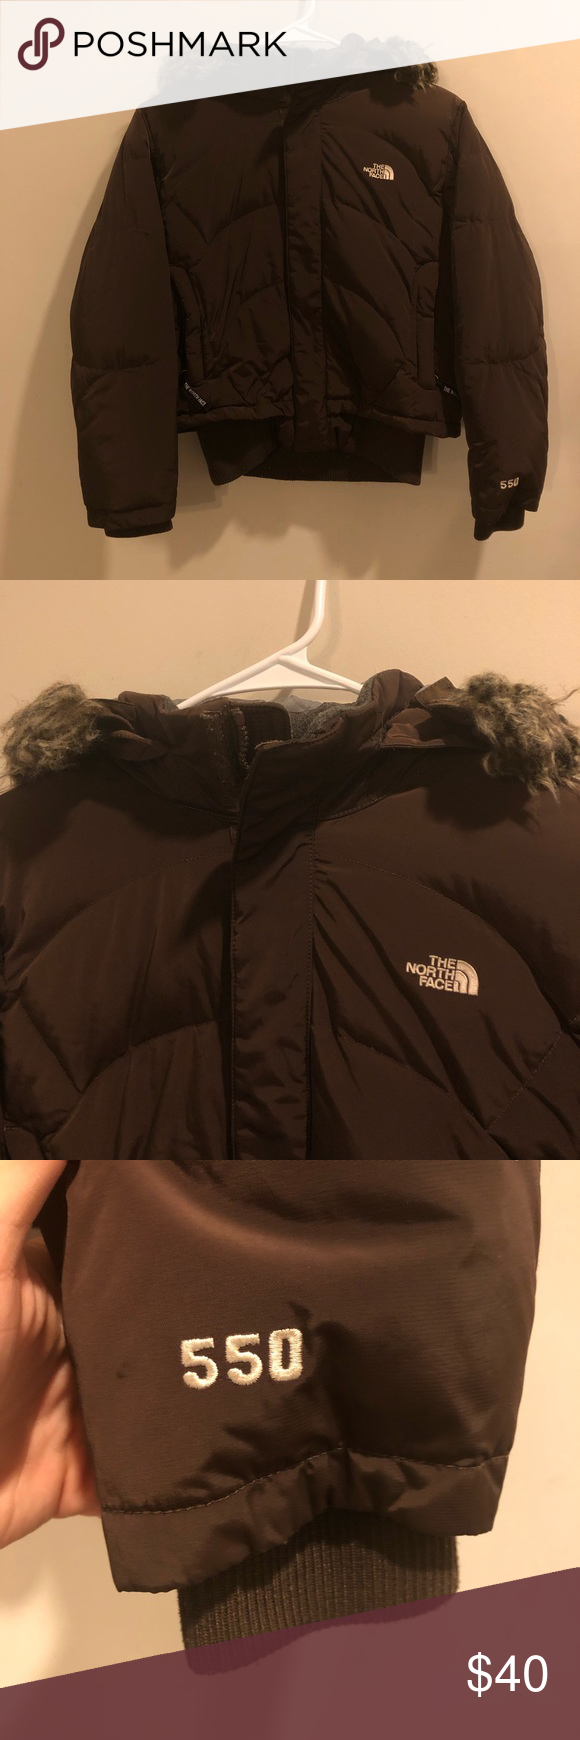 The North Face 550 Puffer Jacket Fur Hood Brown Puffer Jacket Fur Hood Fur Jacket Puffer Jackets [ 1740 x 580 Pixel ]